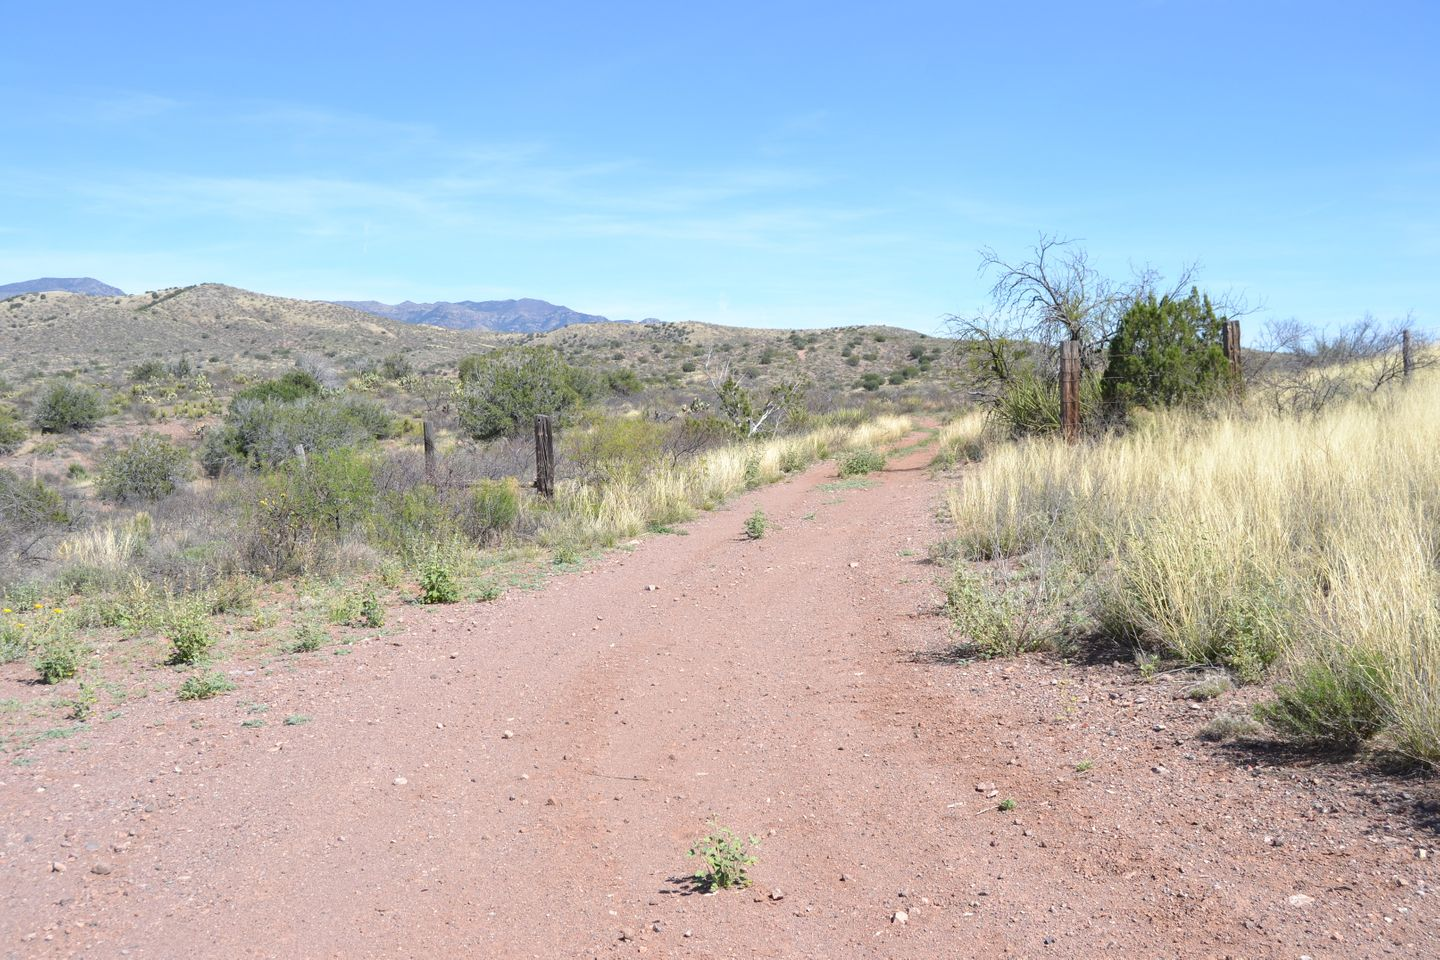 Jackson Cabin/Muleshoe Ranch Road - Waypoint 6: El Paso Gas Line Closed to Motorized Use